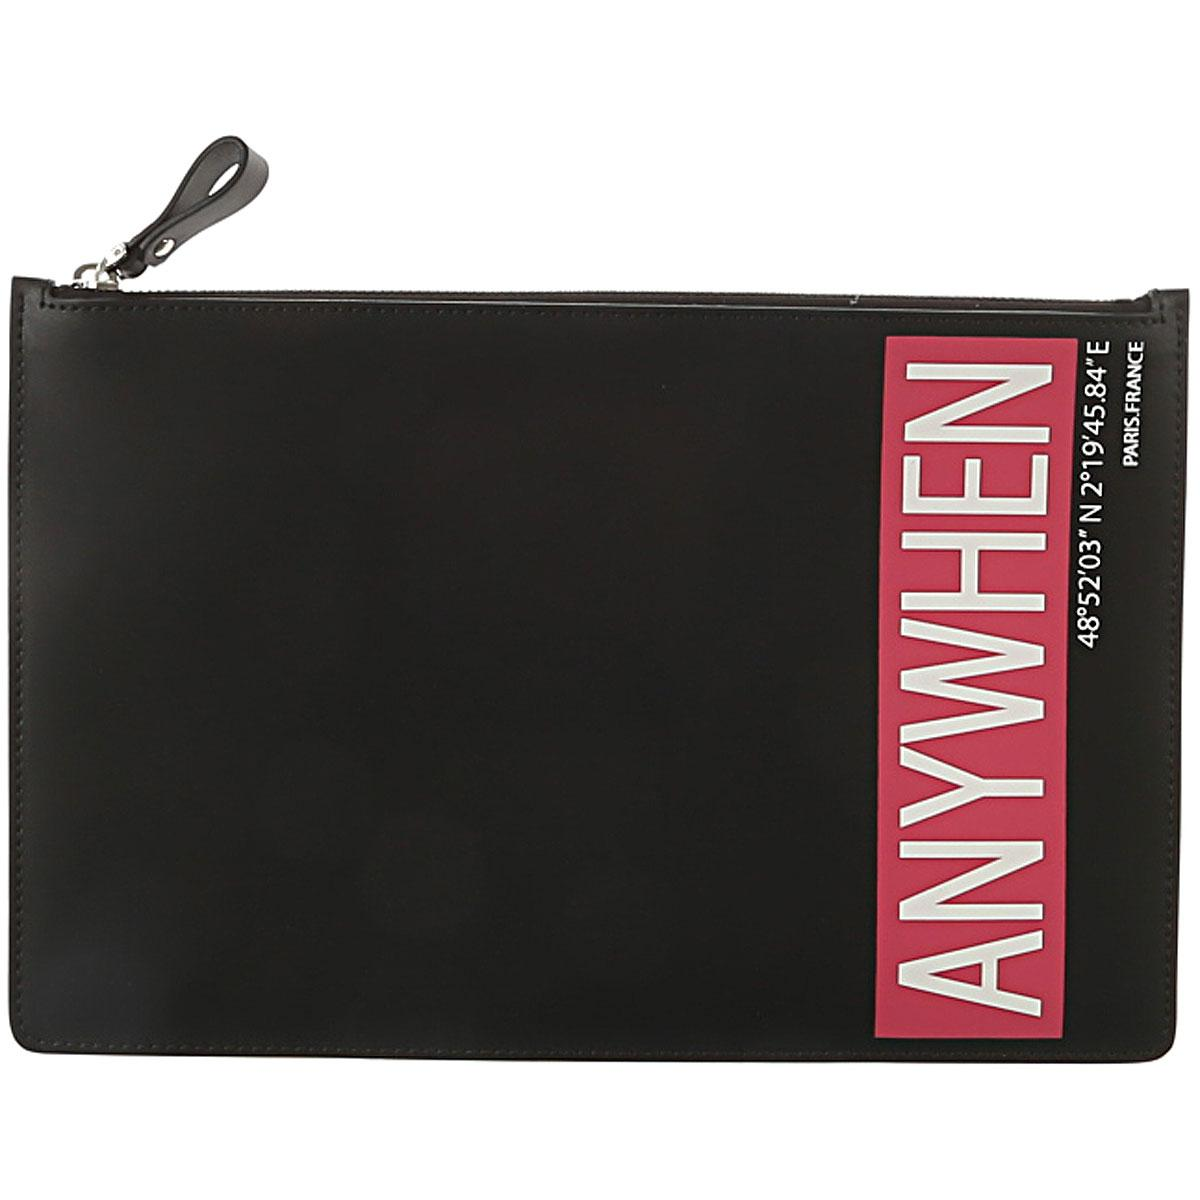 d35ad3f8570ad Lyst - Valentino Pouches On Sale in Black for Men - Save 1.5%